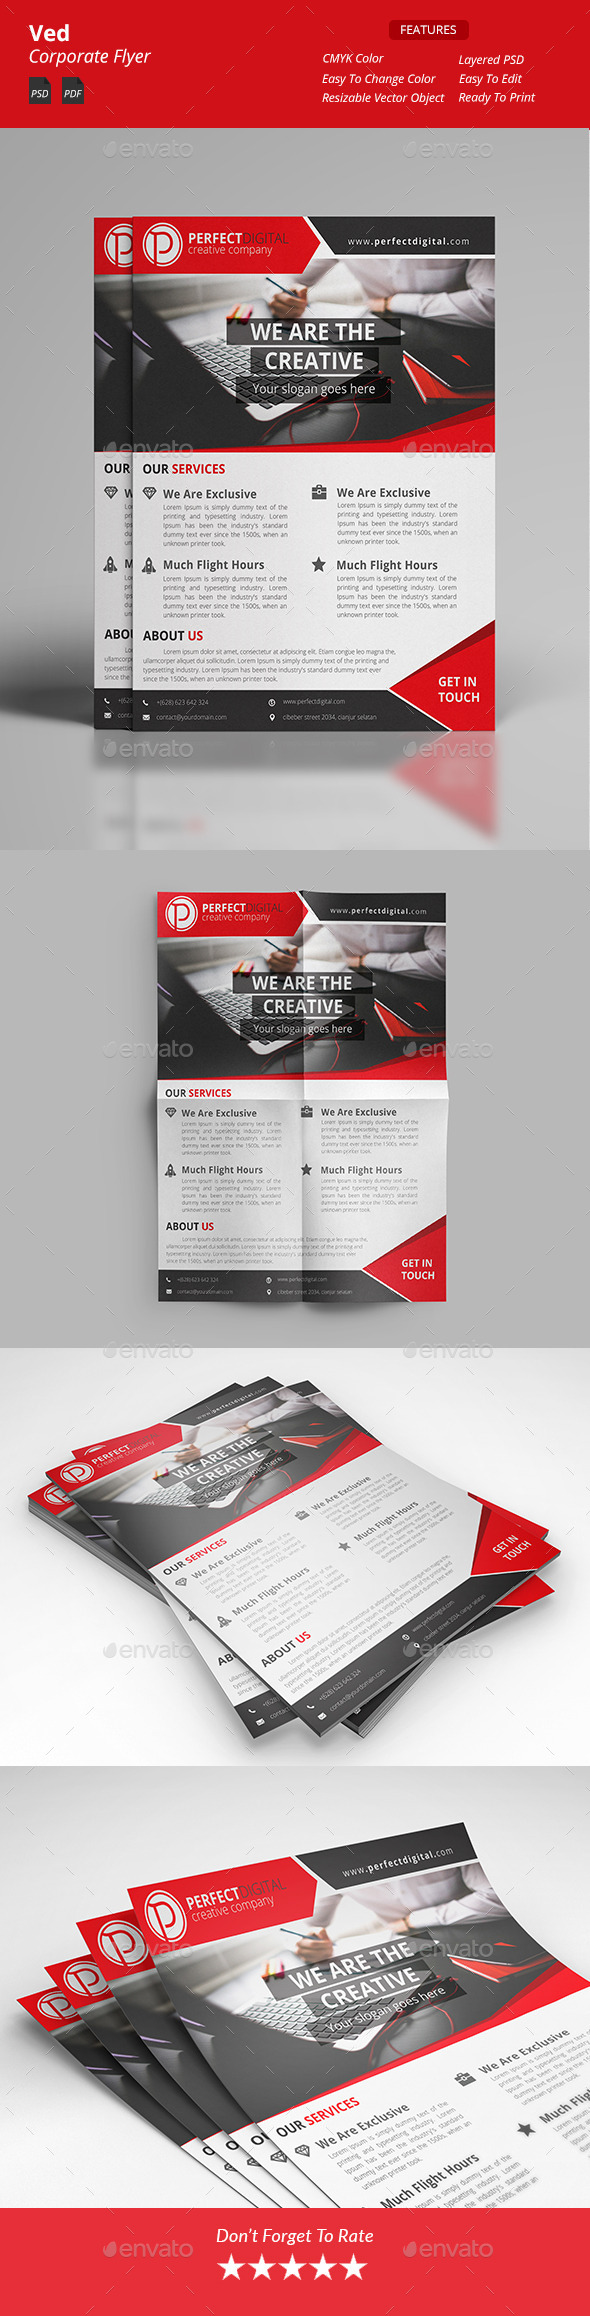 Ved - Corporate Flyers - Corporate Flyers